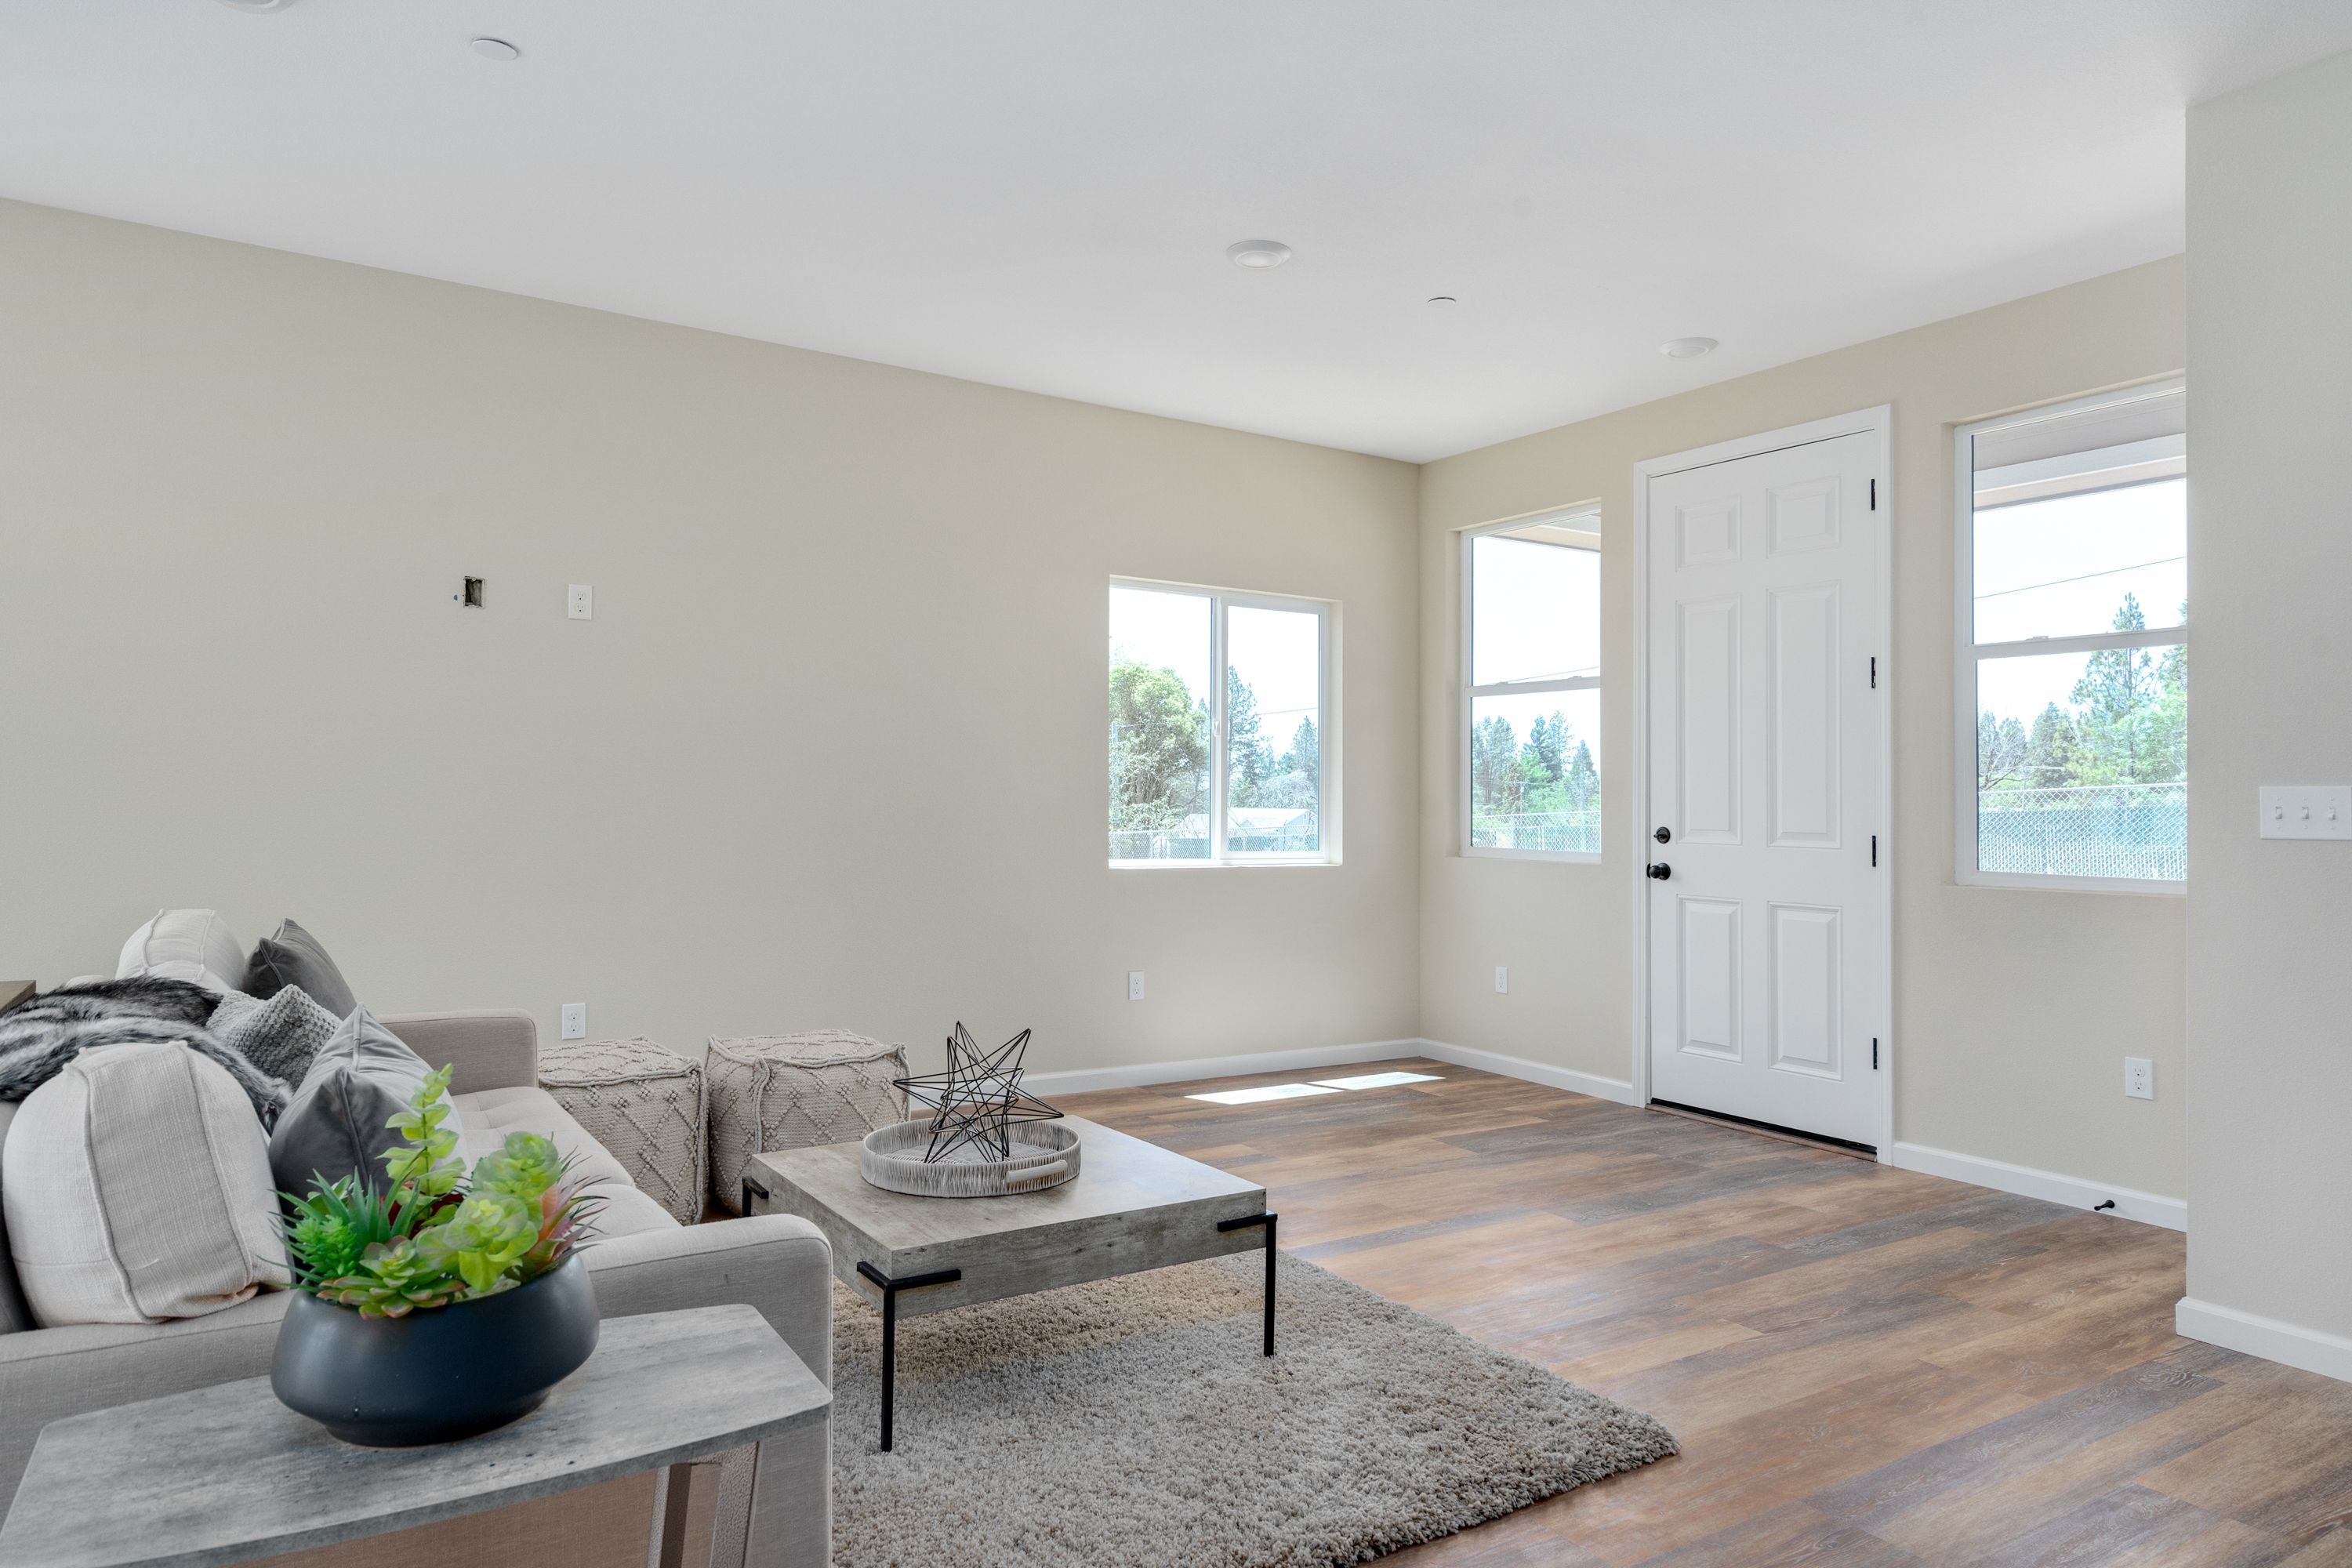 Living Area featured in the 1674 Waring Ct By Silvermark Luxury Homes in Santa Rosa, CA